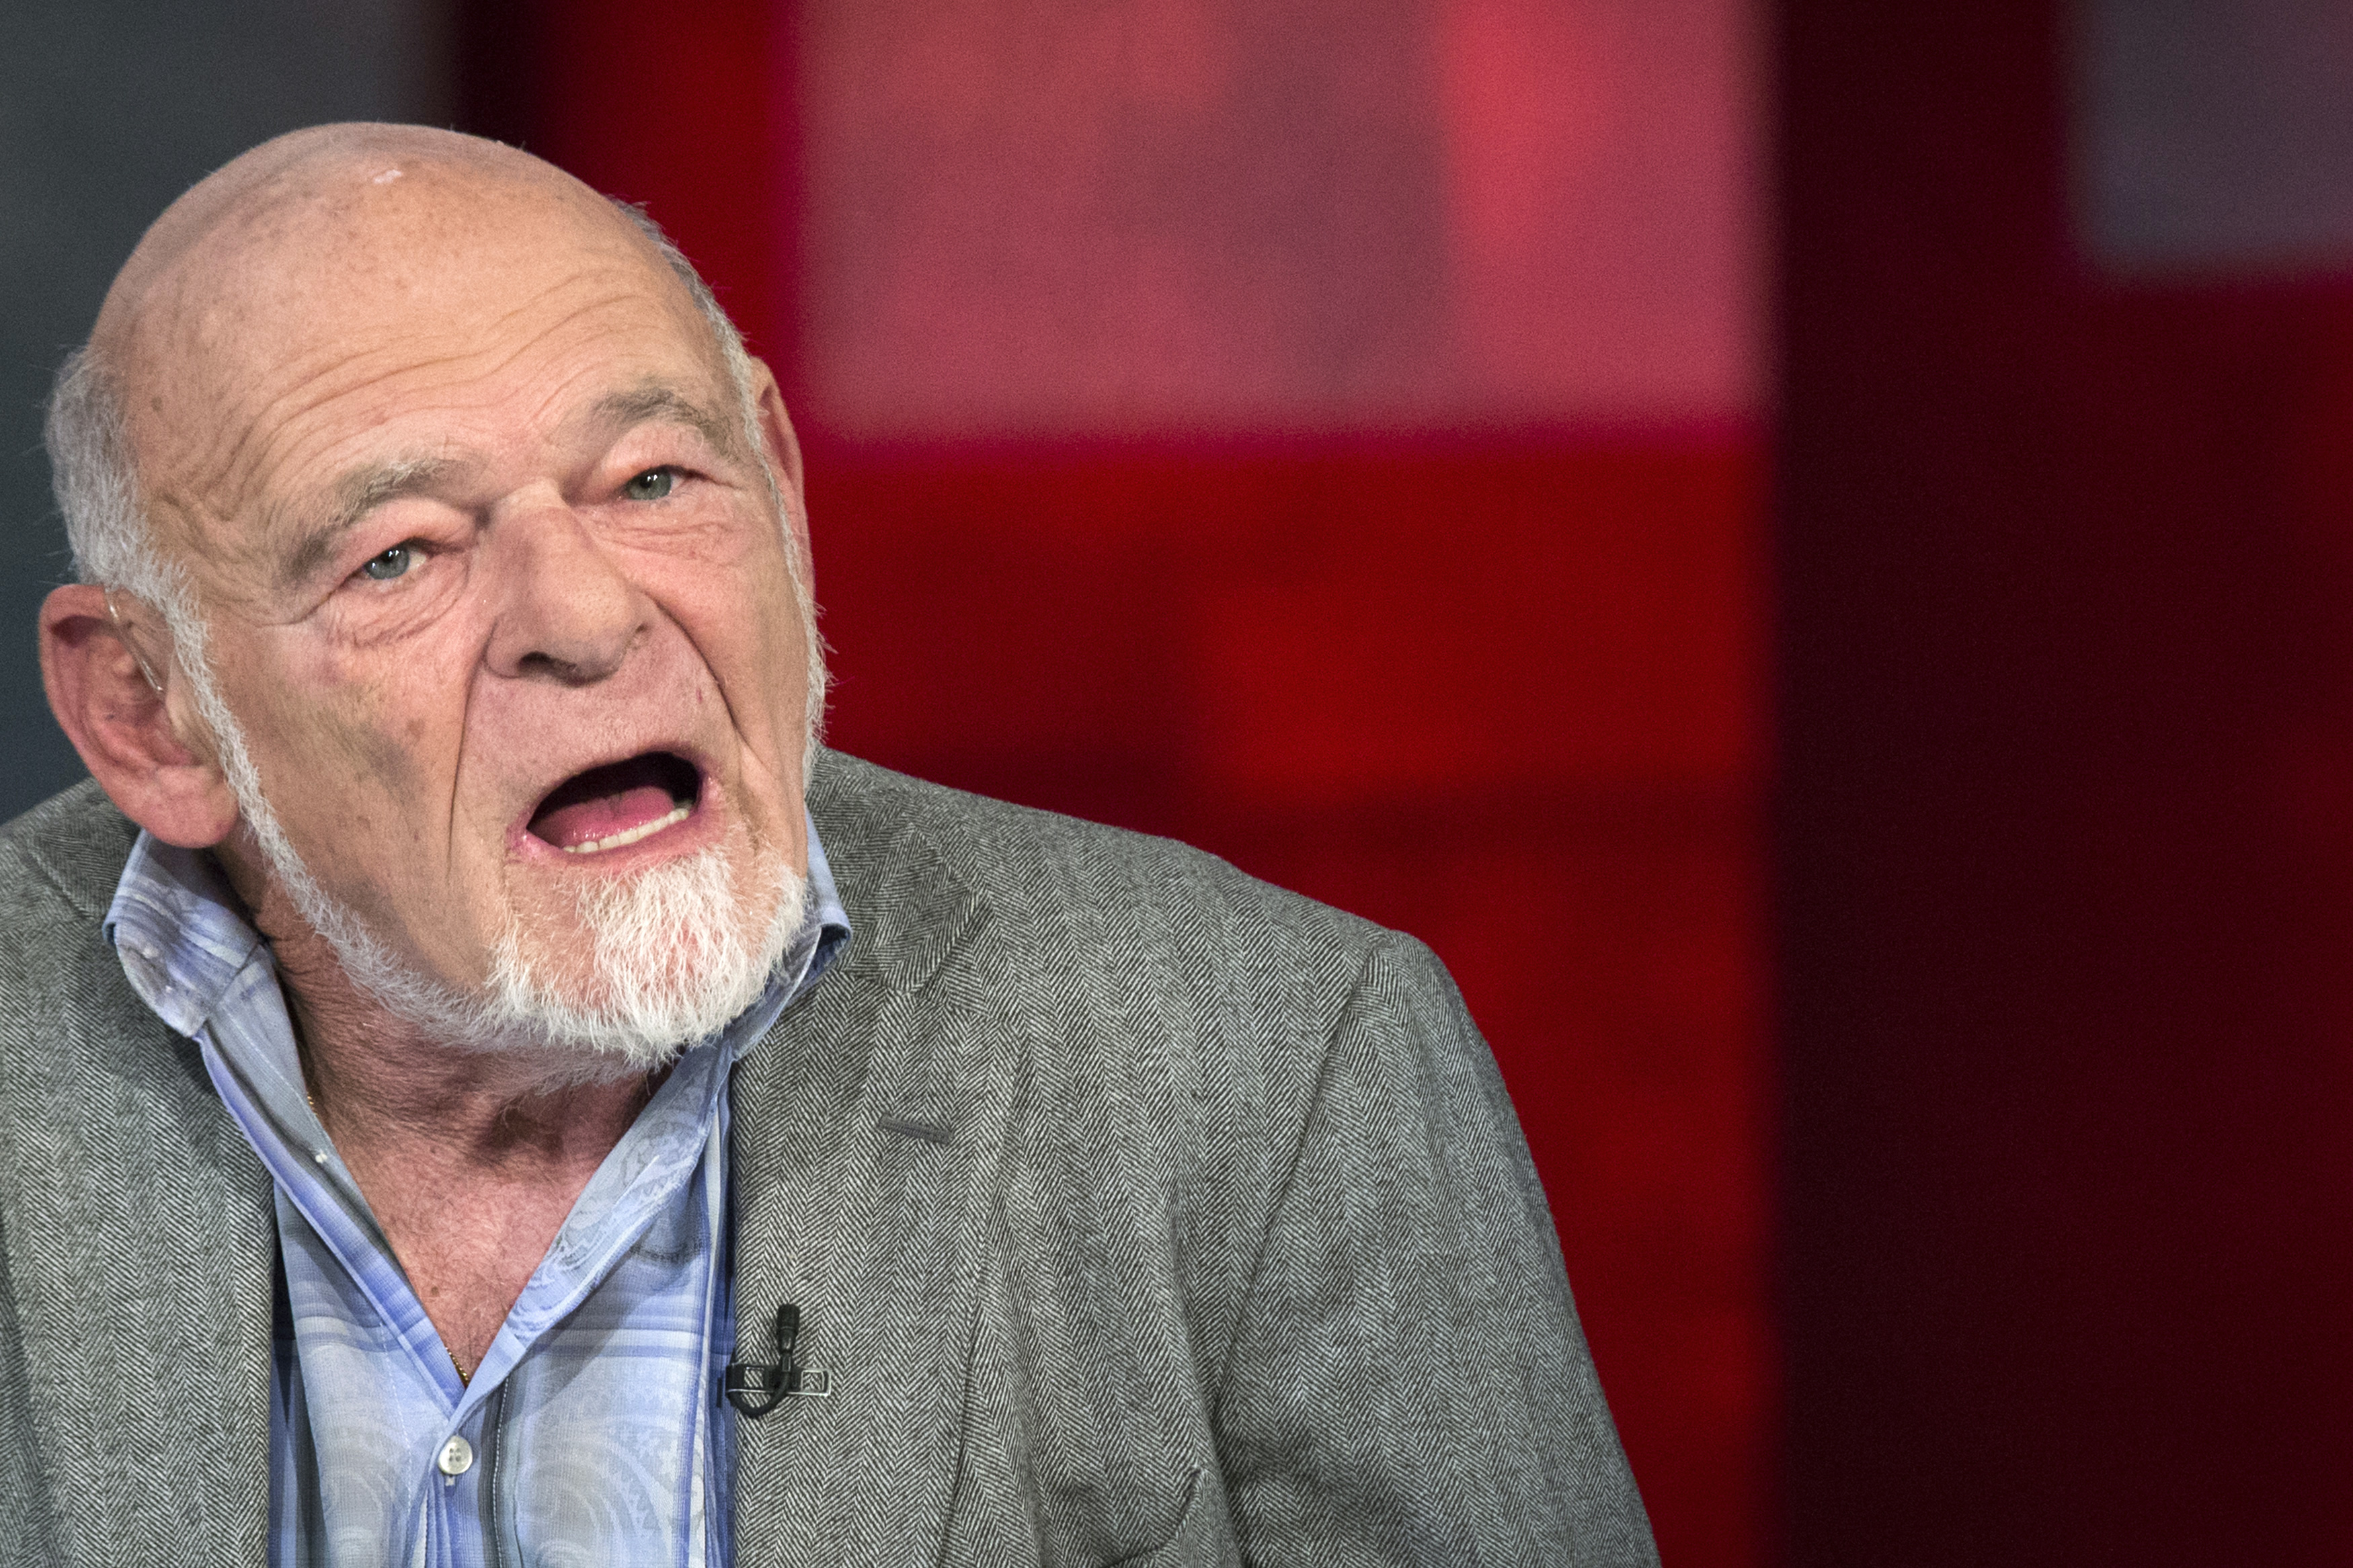 Sam Zell, chairman of Equity Group Investments, appears on a Fox Business Network's show in New York